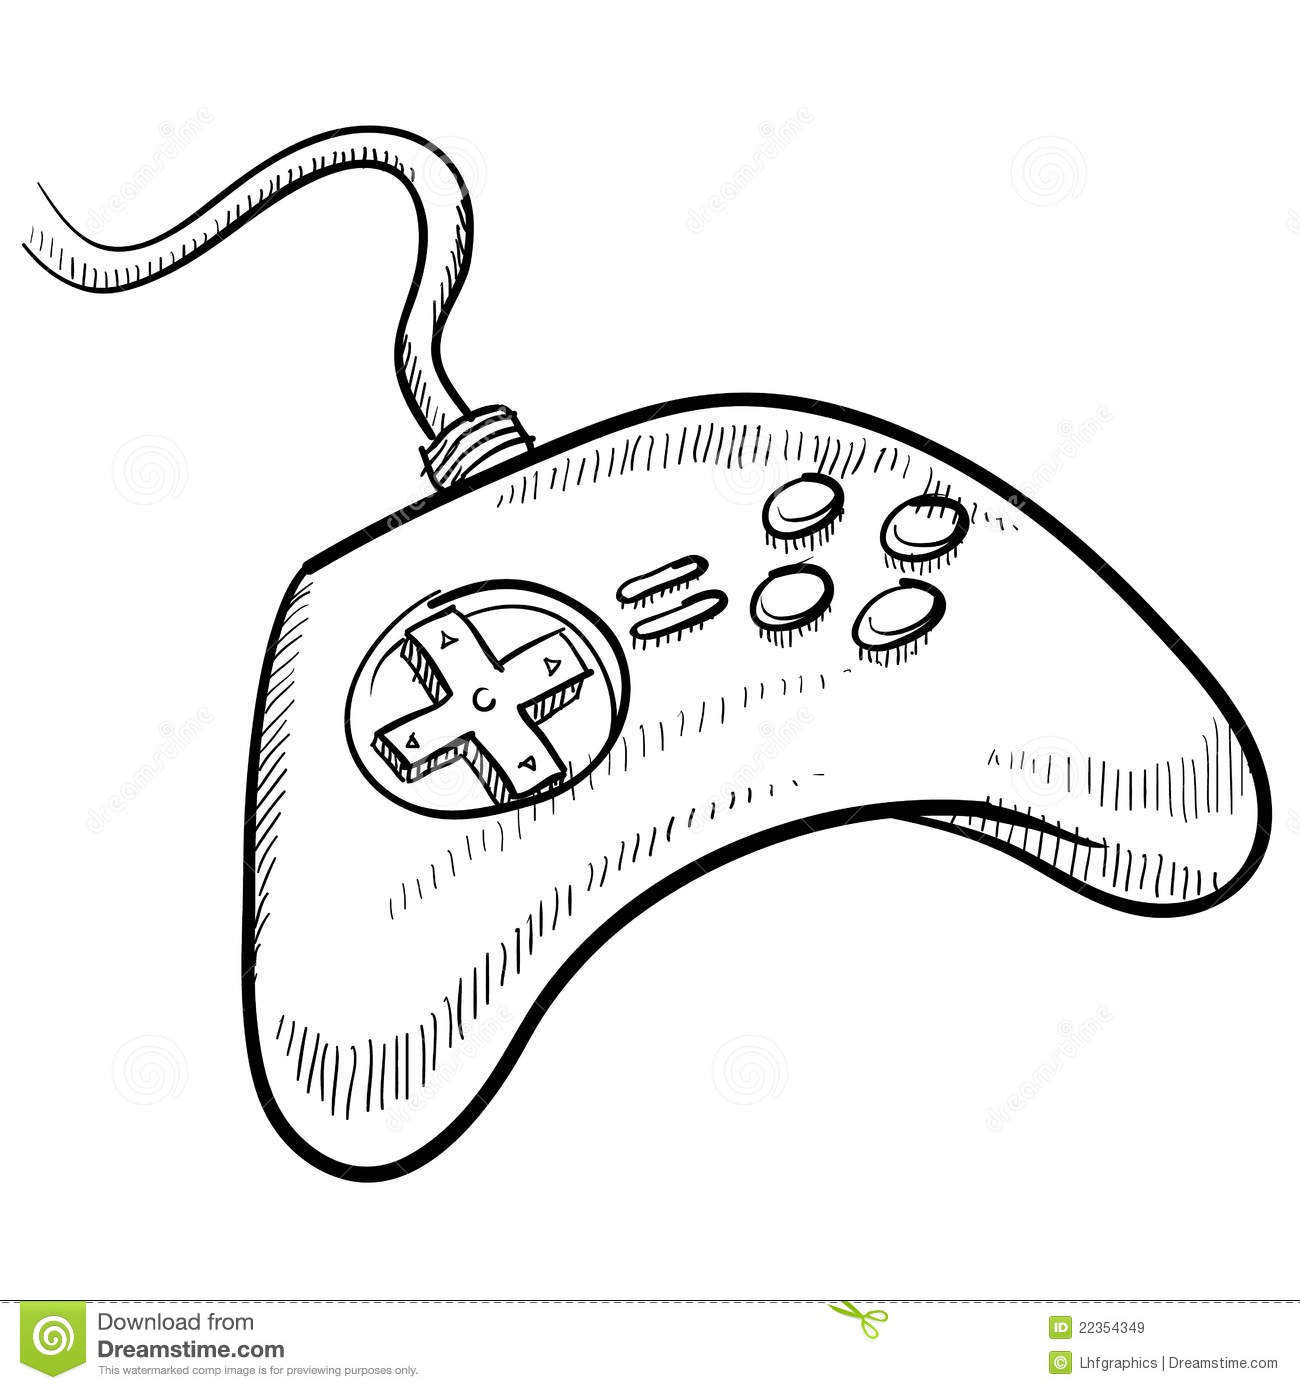 Video Game Controller Sketch Royalty Free Stock Images